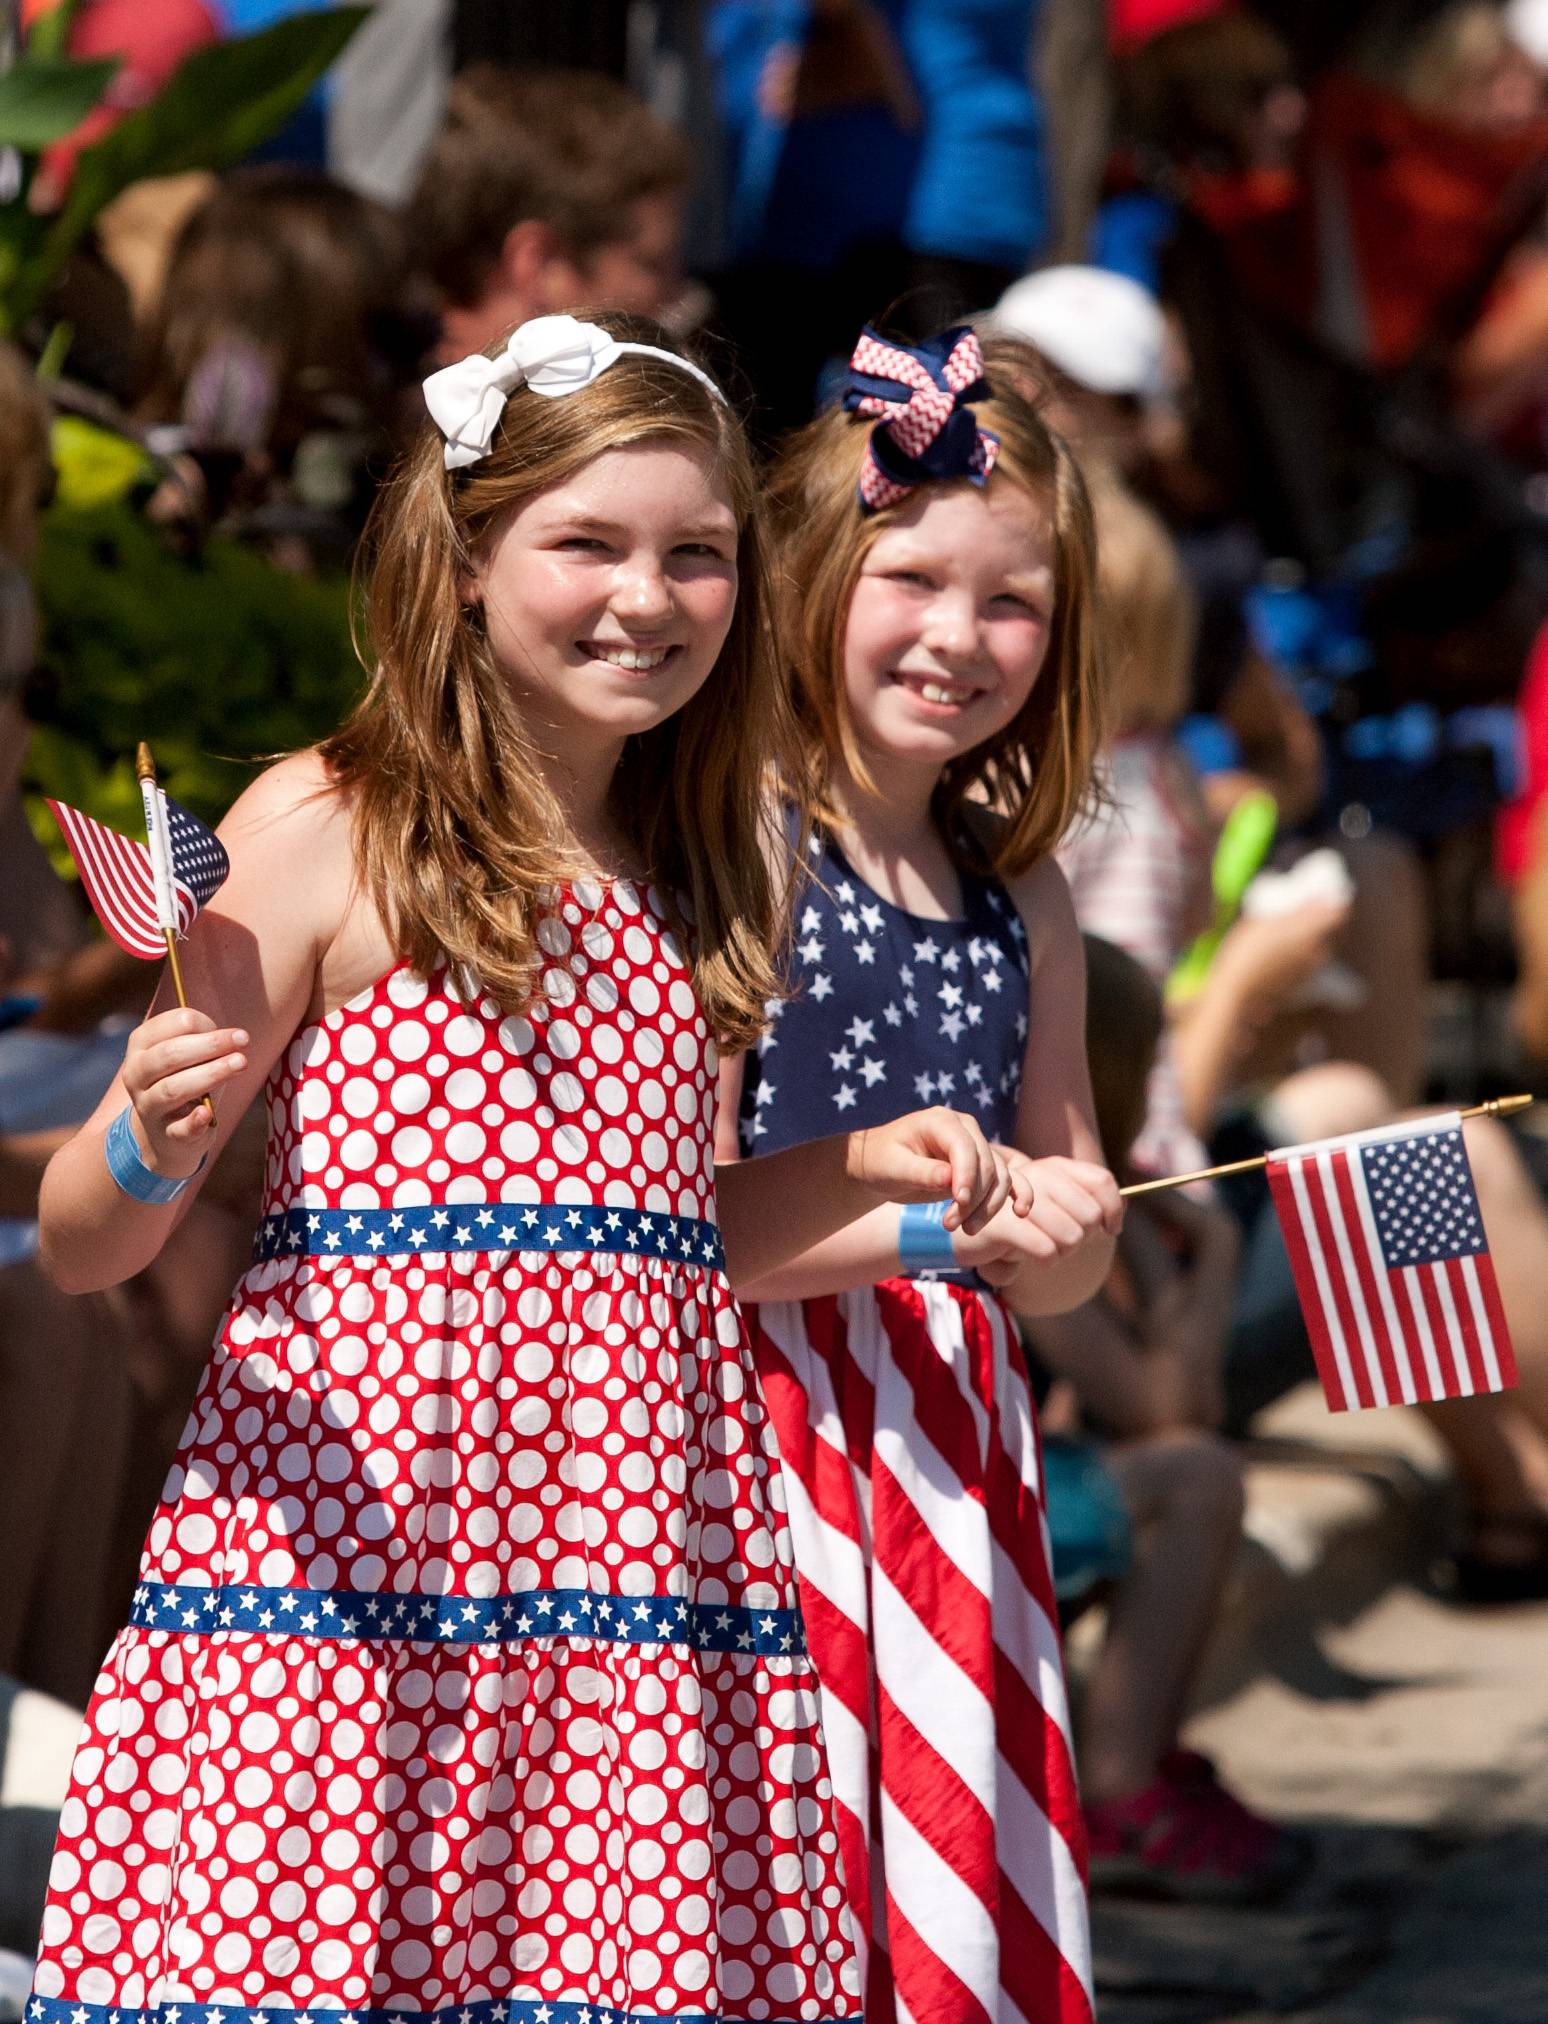 Former Wheaton residents Ella Pfeiffer, 9, and Aubrey Pfeiffer, 7, watch Wheaton's 2014 Independence Day parade.